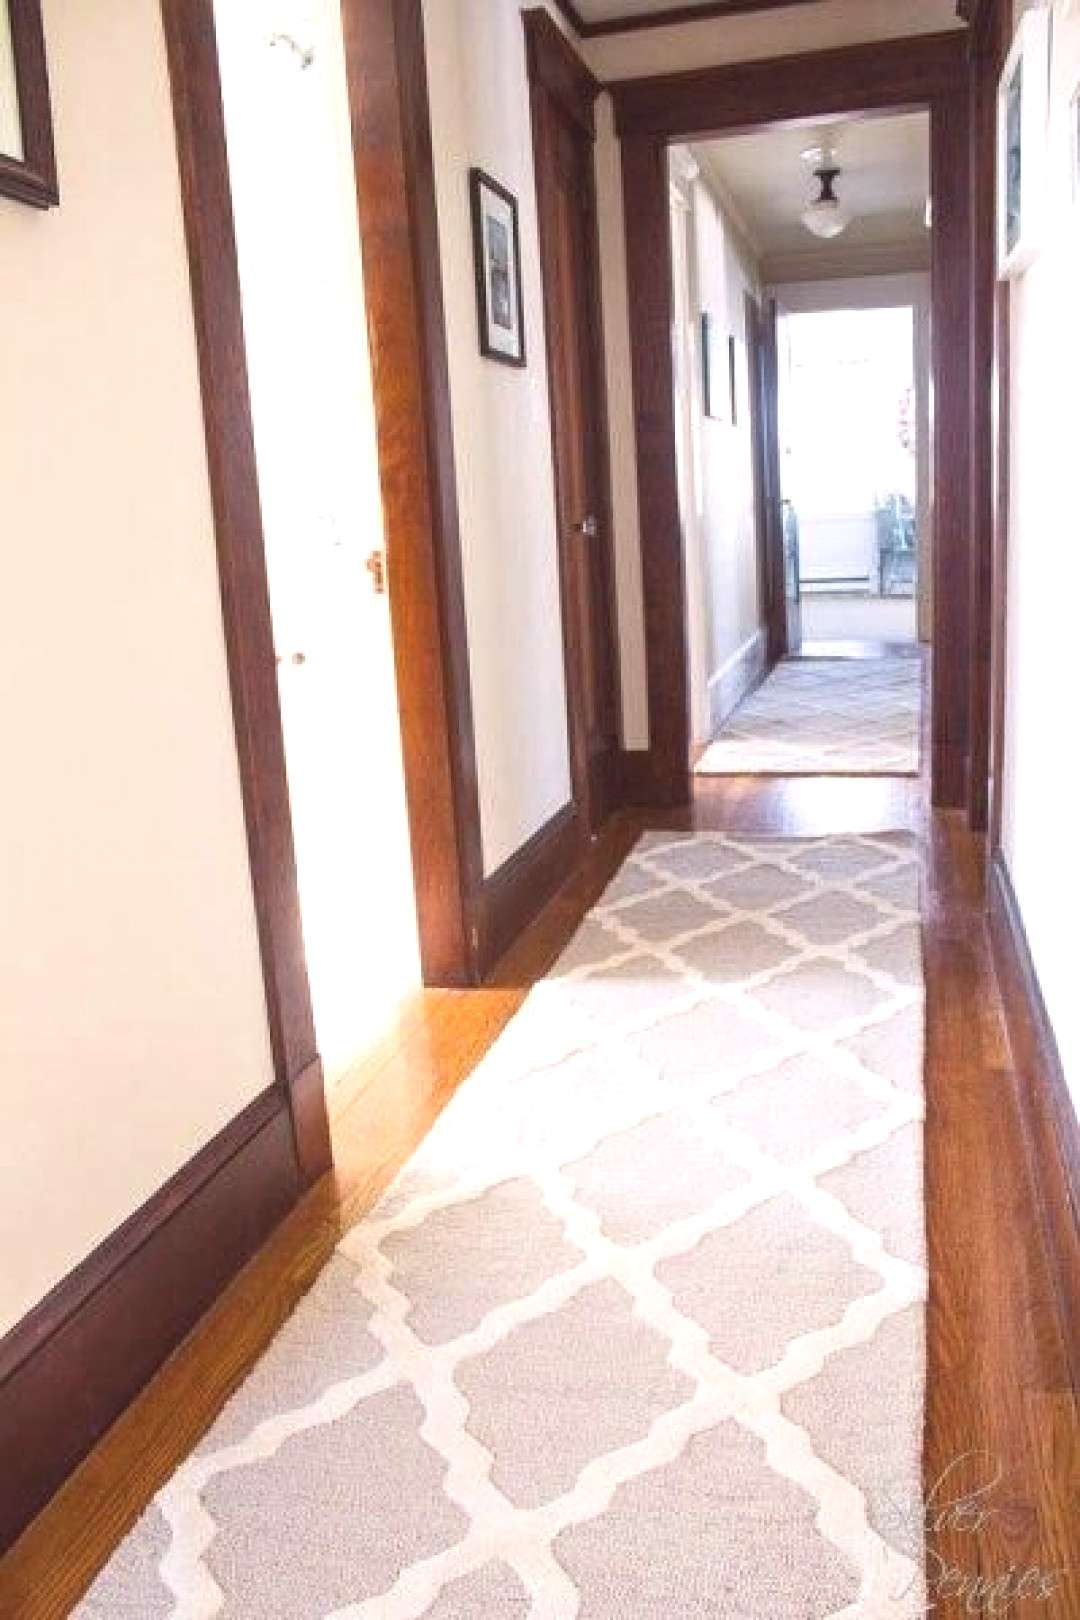 New Rugs in the Hall - Finding Silver Pennies, New Rugs in the Hall - Finding Silver Pennies,